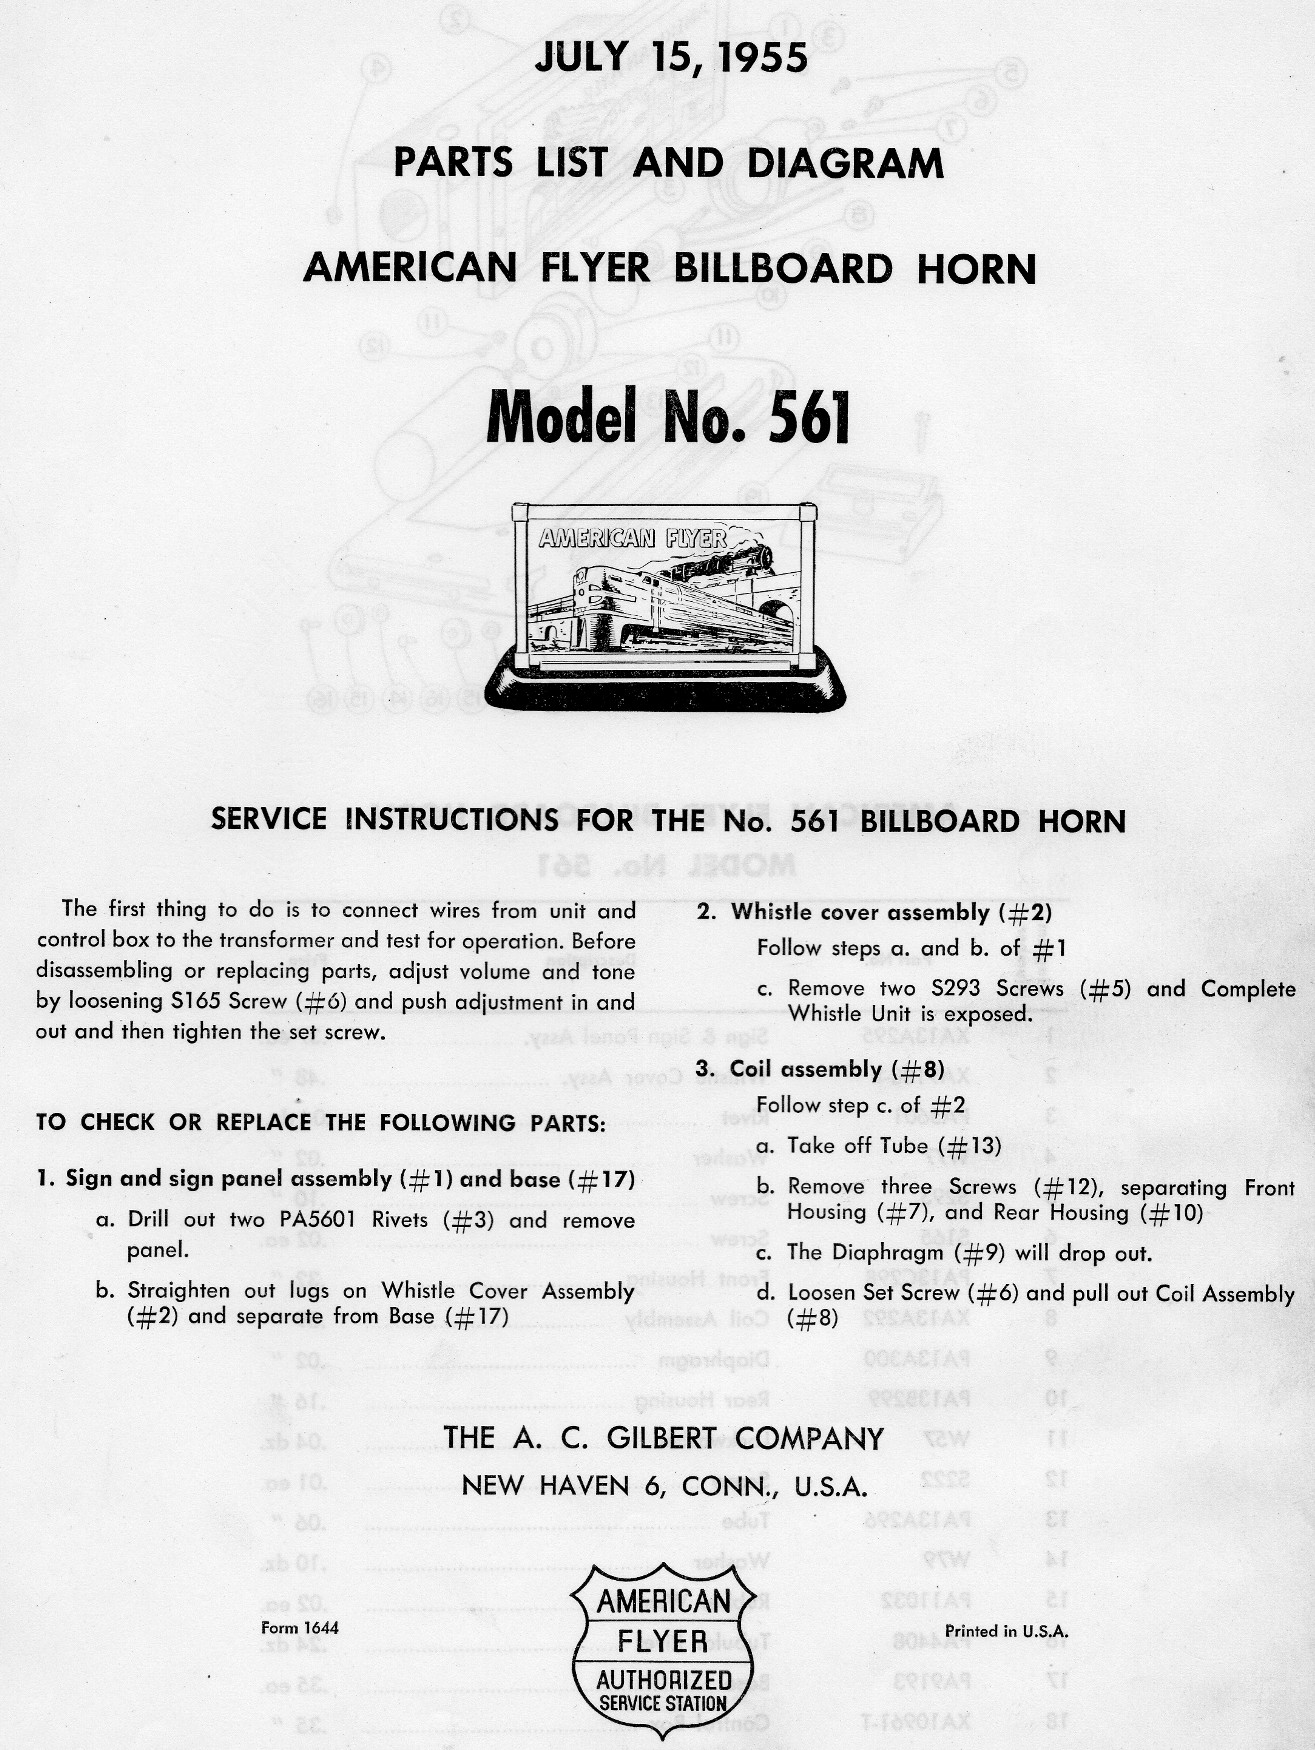 American Flyer Billboard Horn No. 561 Parts List and Diagram - Page 1